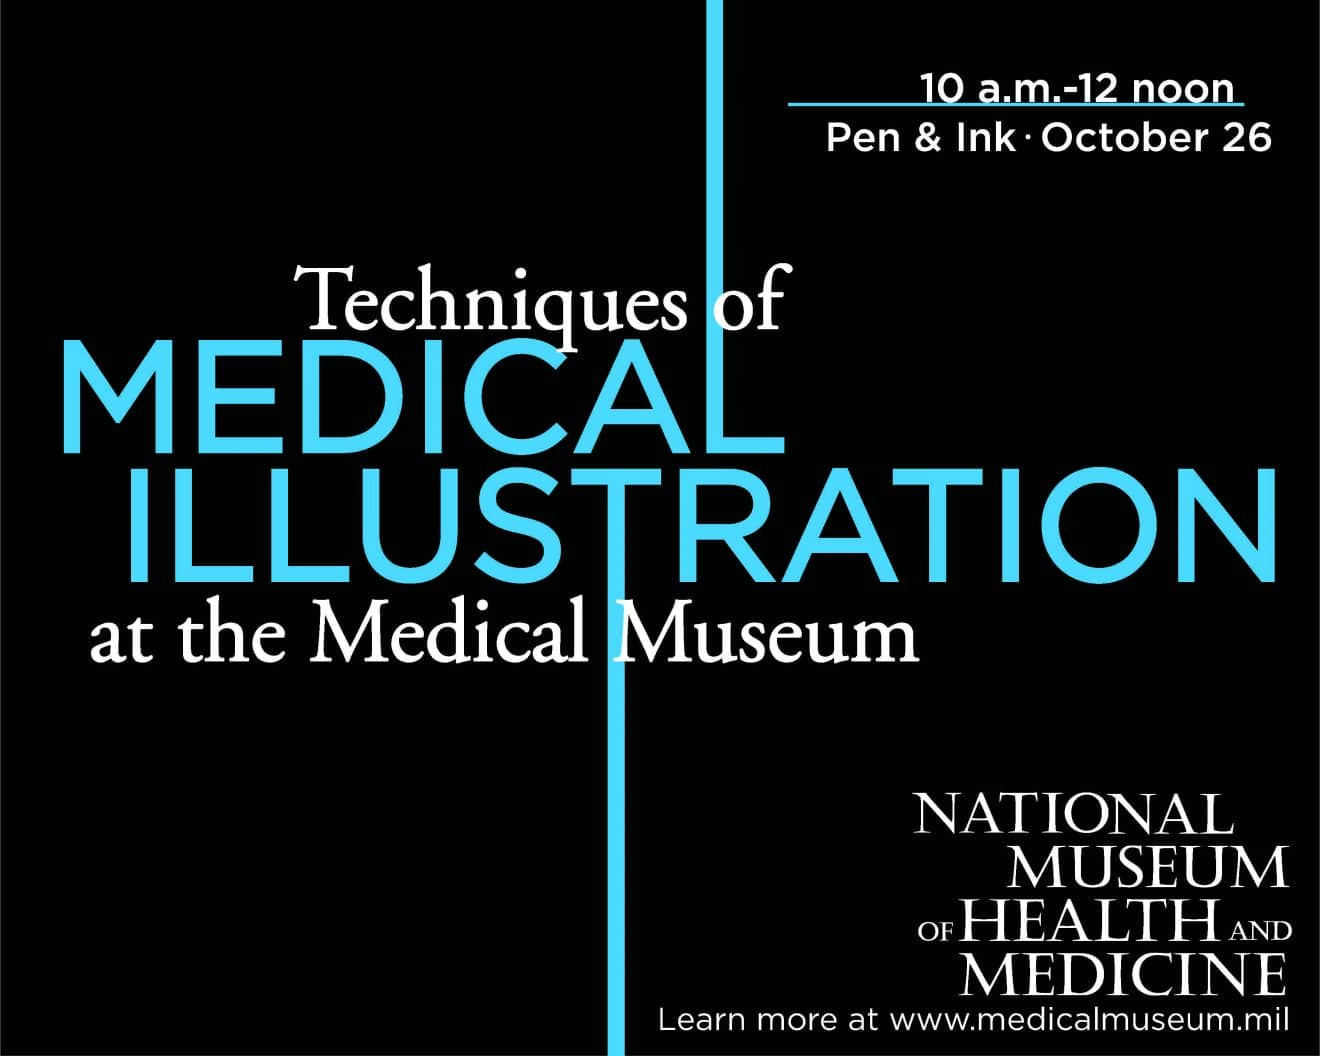 Techniques of Medical Illustration at the Medical Museum: Pen & Ink